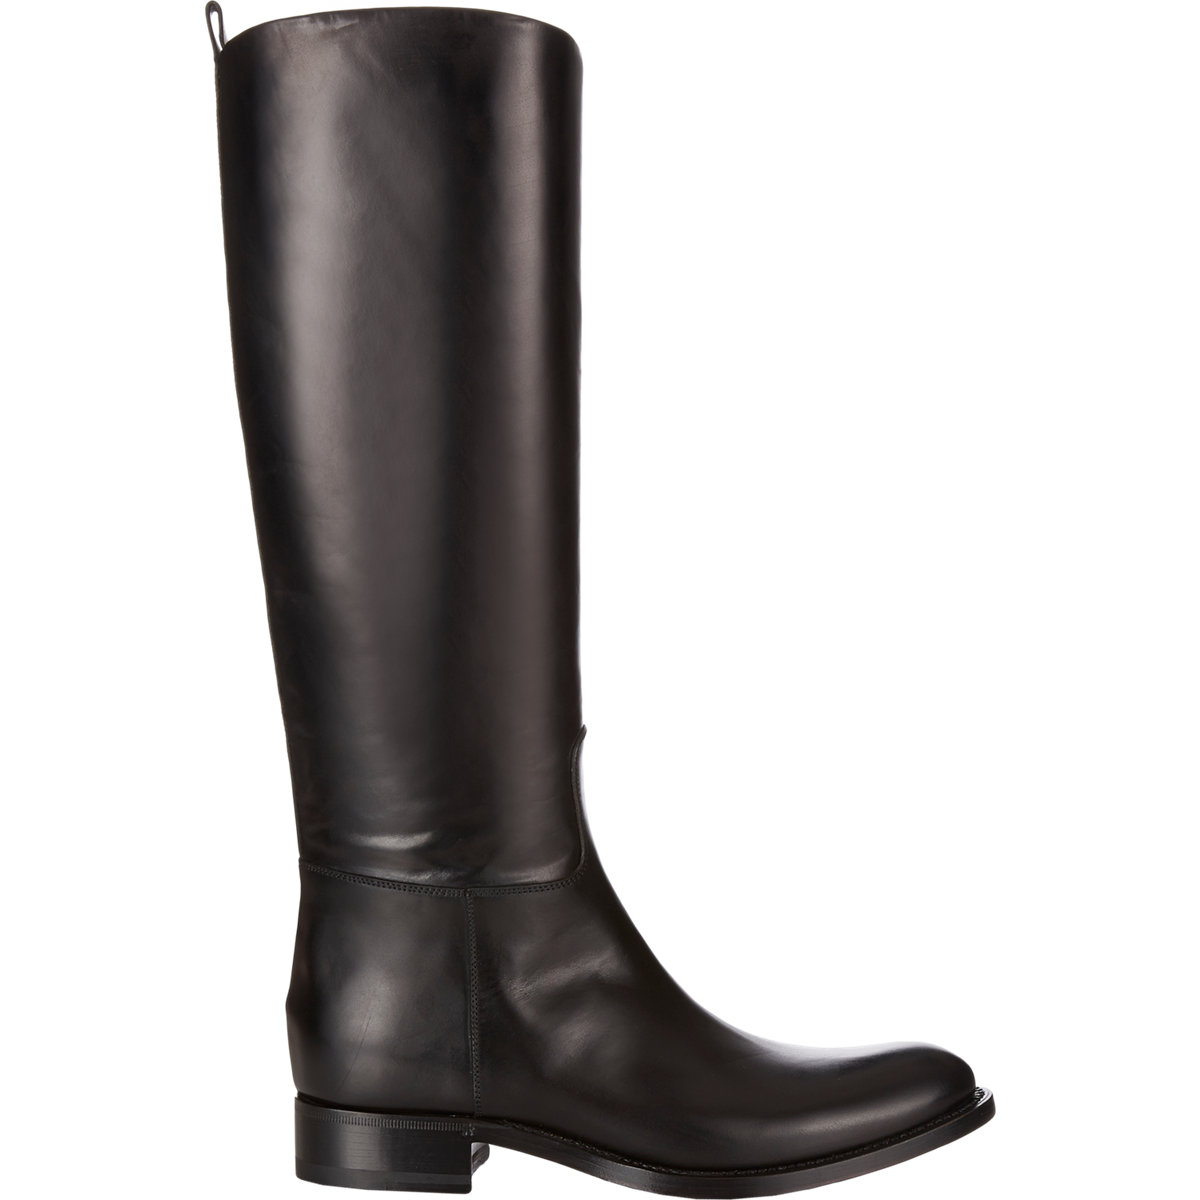 Sartore Pull-on Riding Boots in Black | Lyst